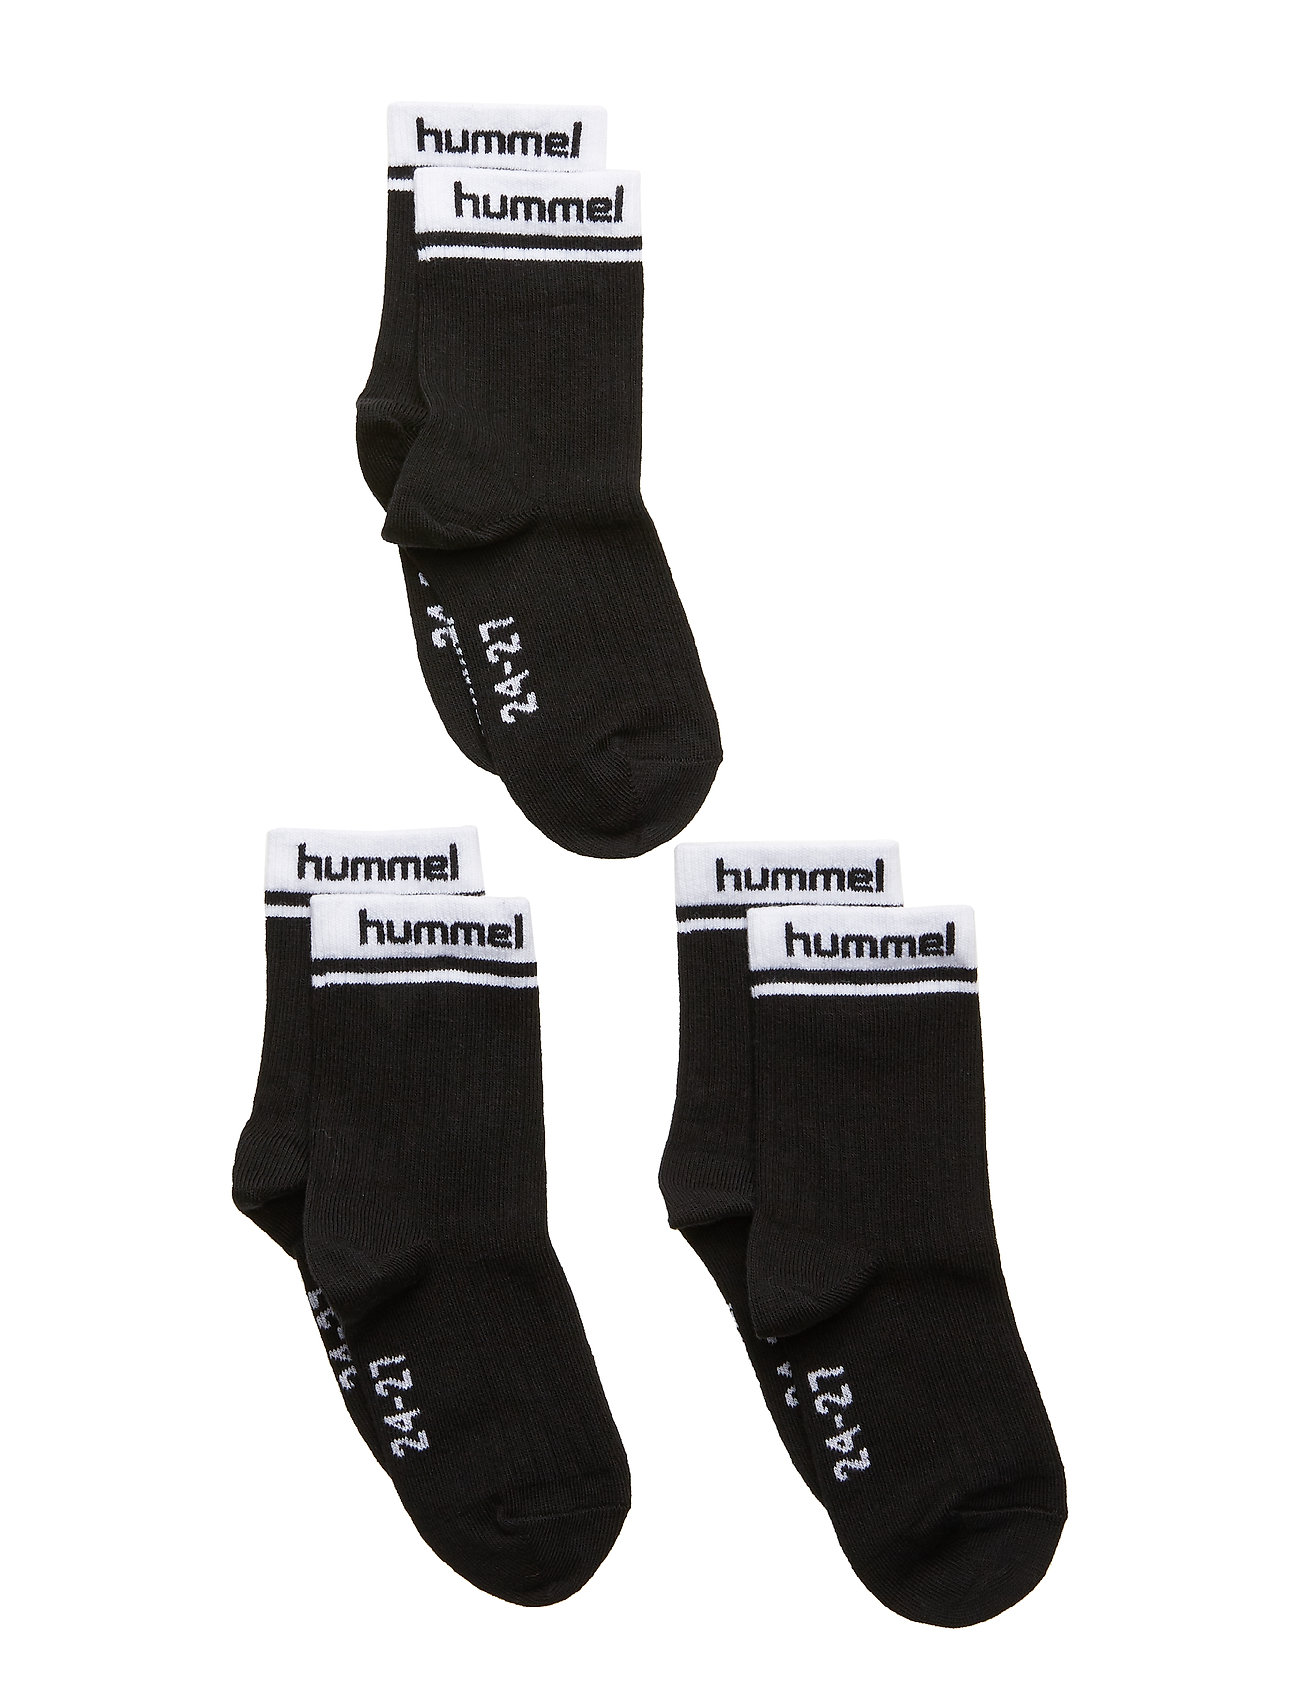 Hummel hmlCONI 3-PACK SOCK - BLACK